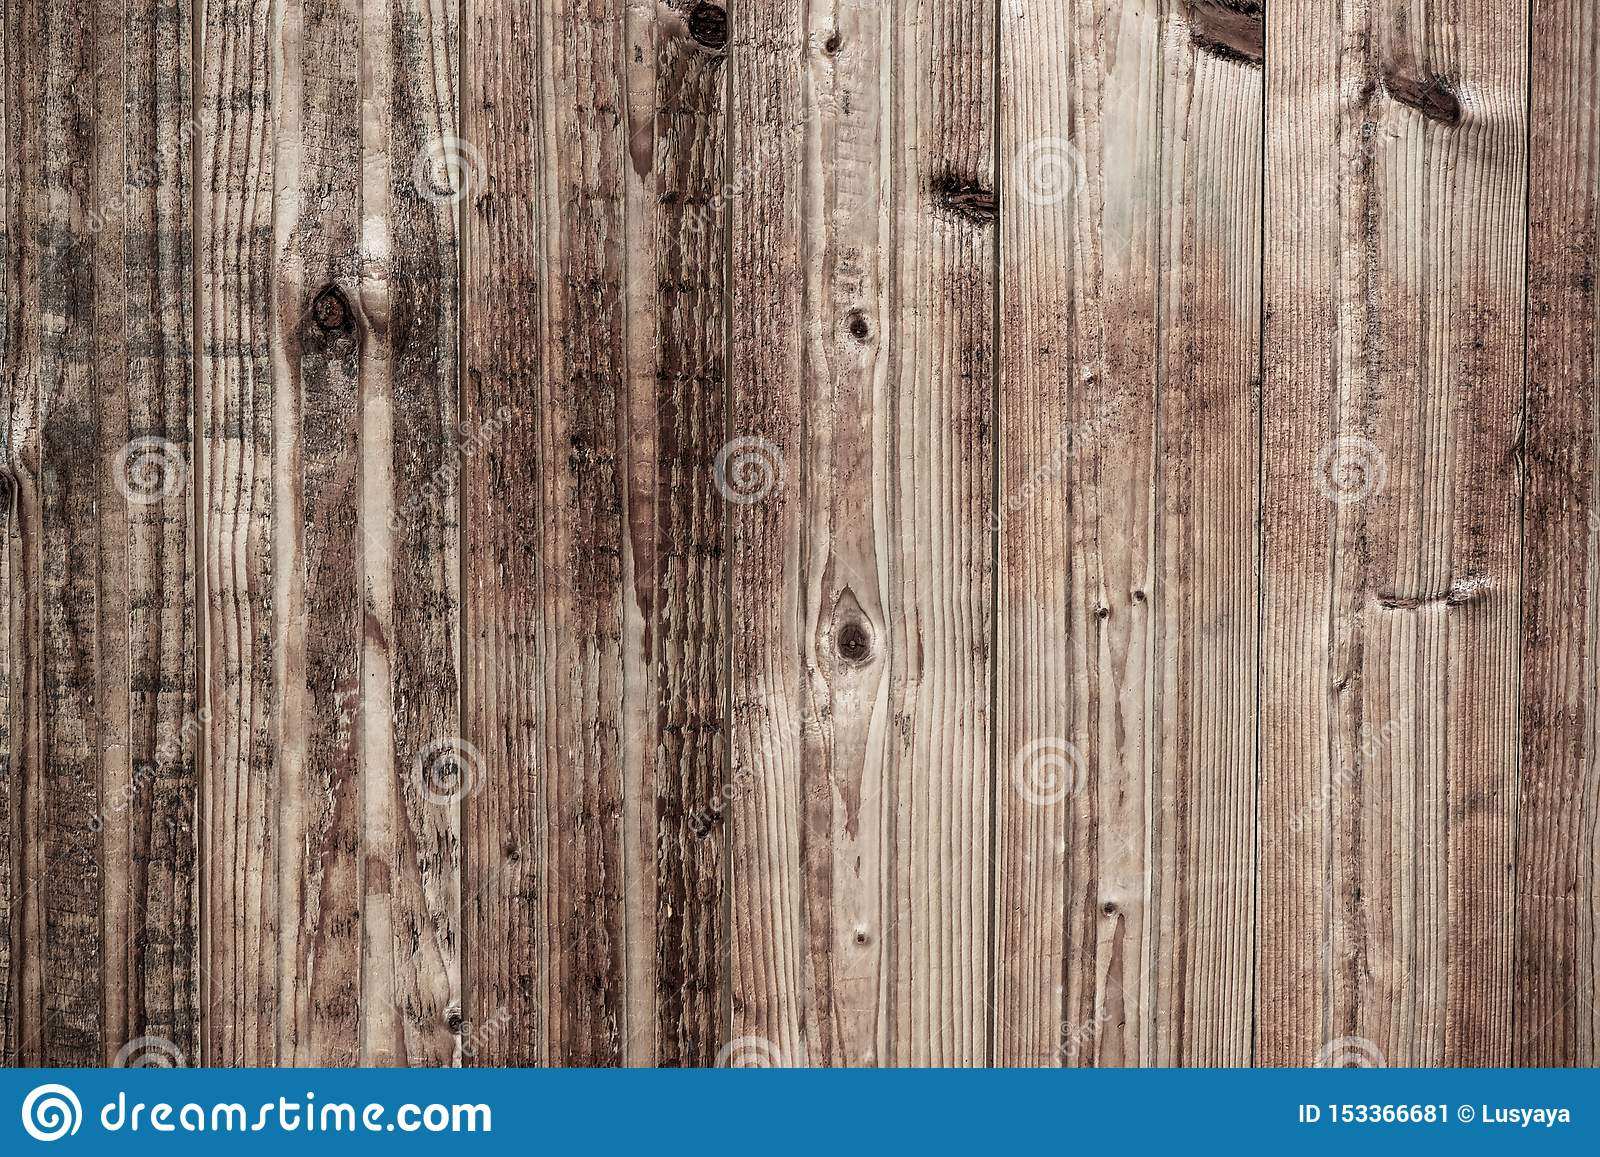 Grey Wood Wallpaper For Artistic Purposes Natural Abstract